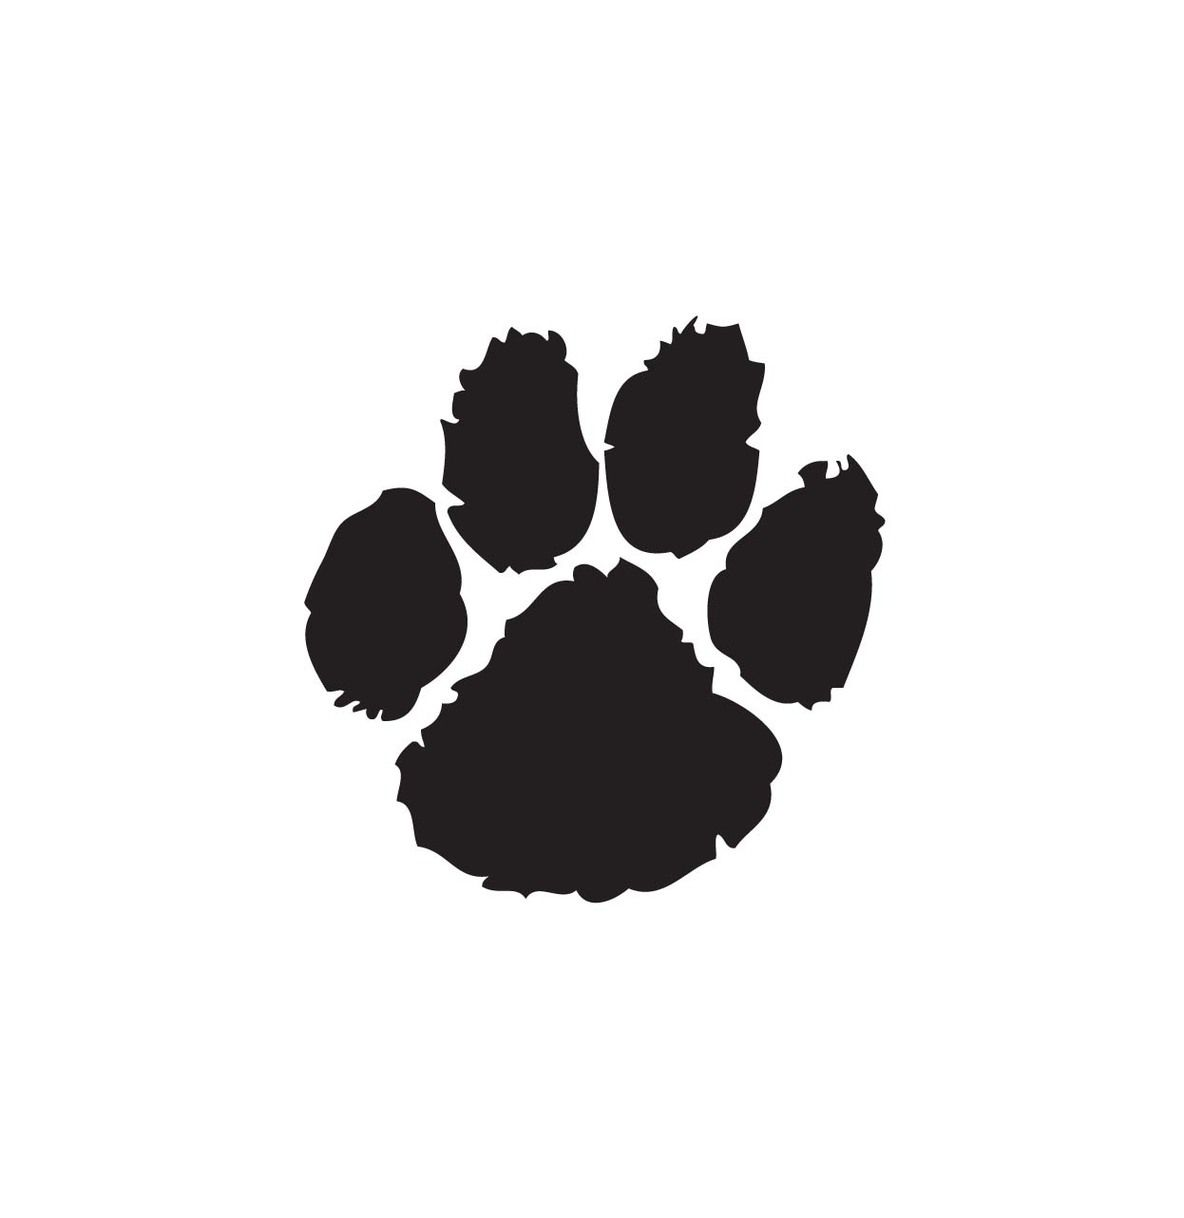 Husky to use clip. Free clipart image of a paw print